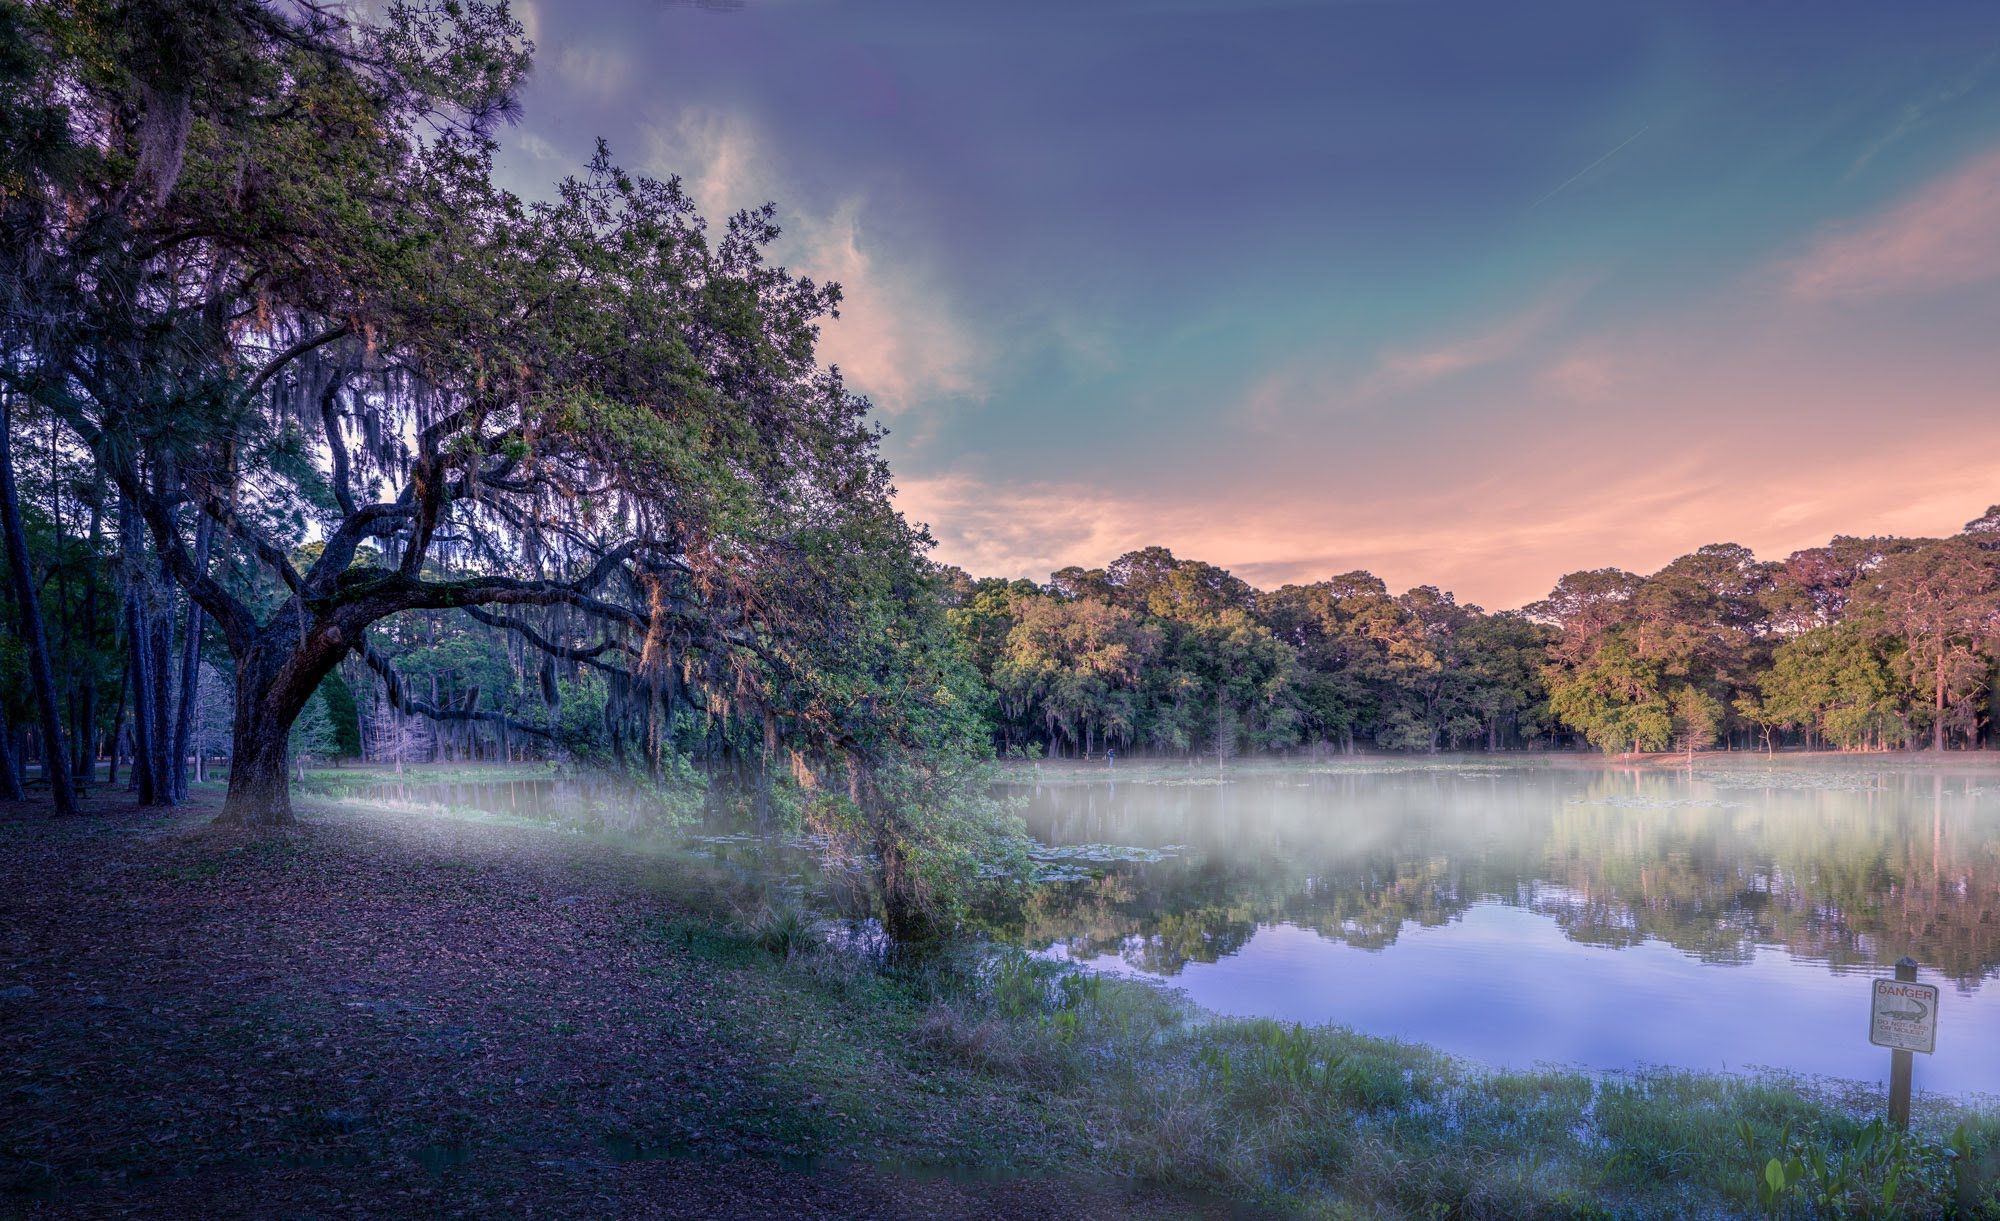 How to Add and Remove Fog in Photoshop - PHLEARN